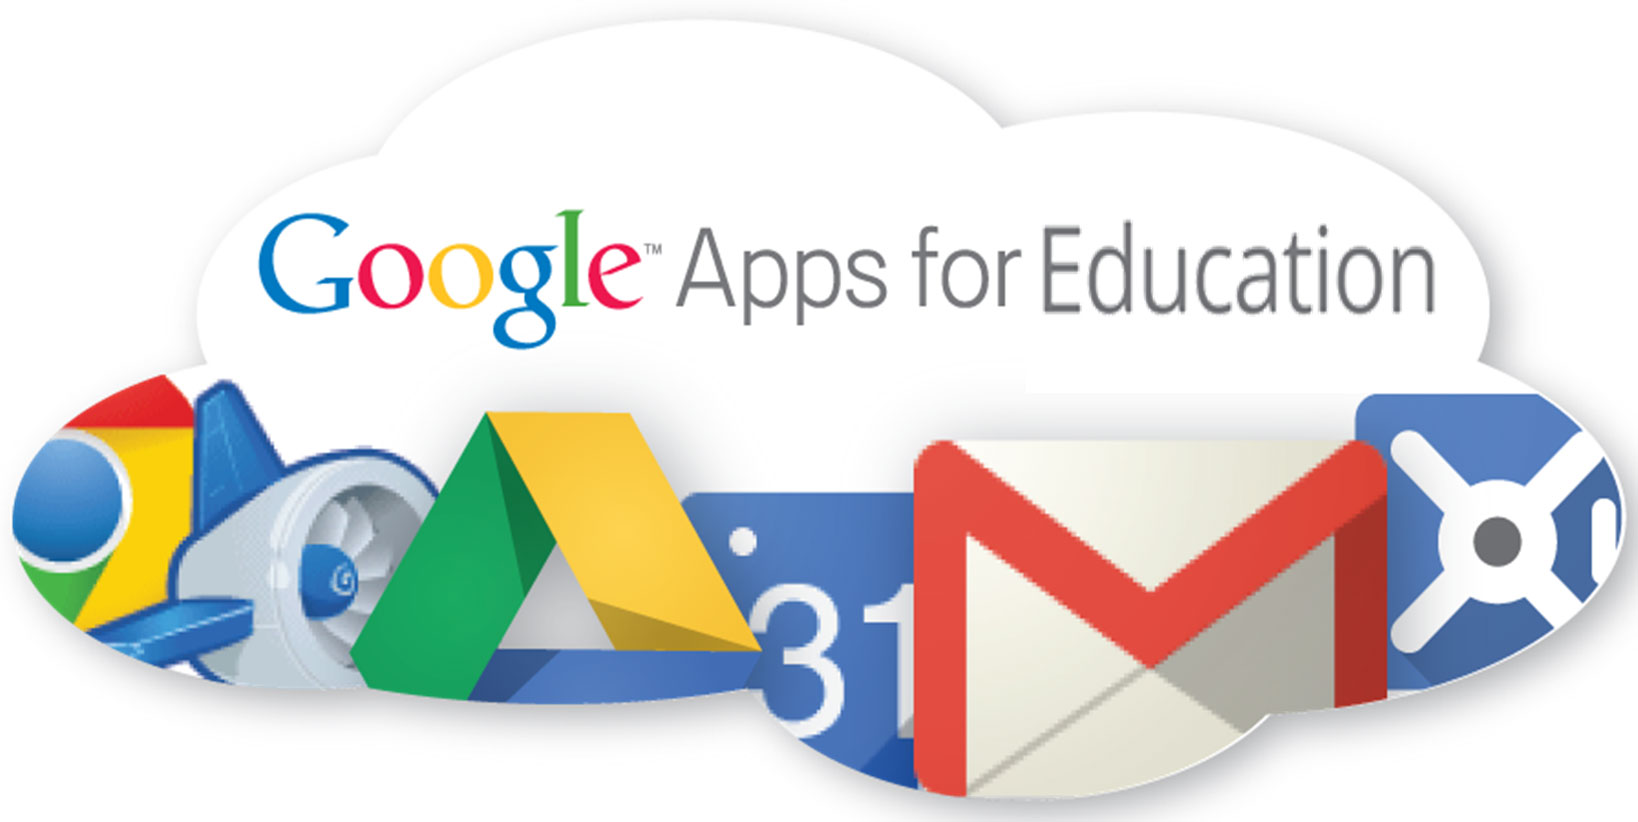 google apps for education - by erica michalske [infographic]